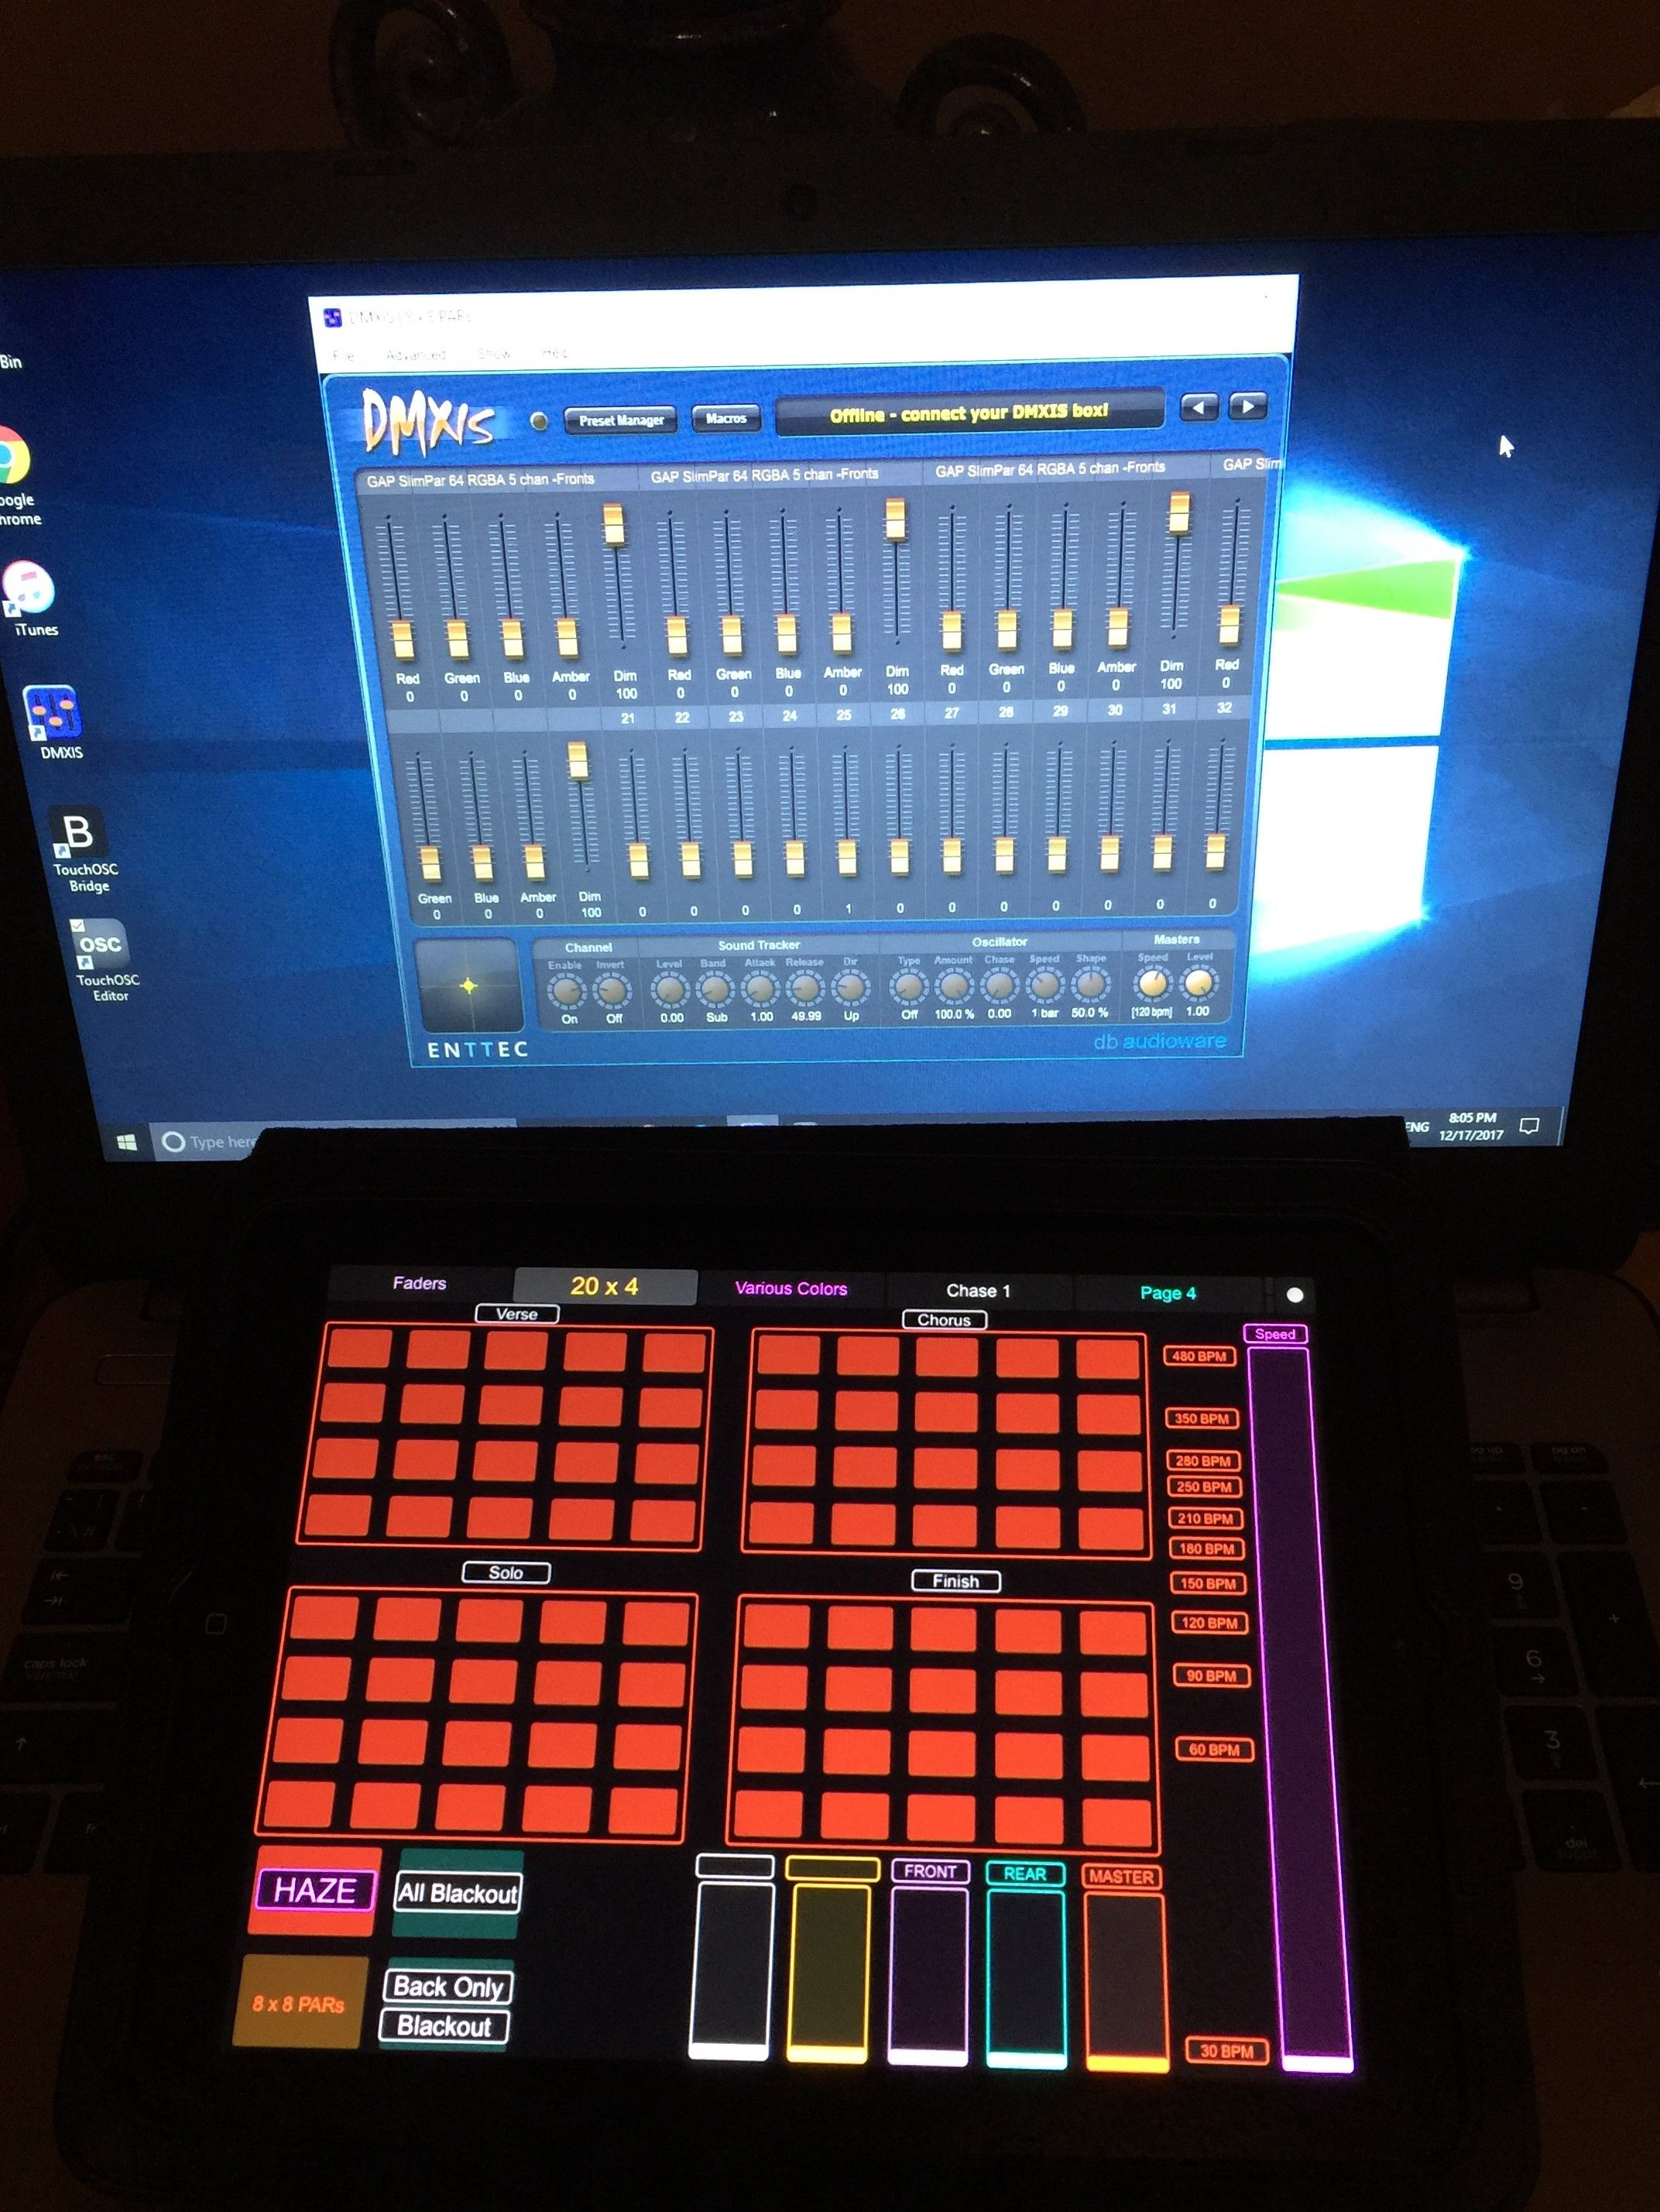 control lighting with ipad. Glaser Audio Productions - Designing Another Layout With TouchOSC For The Lighting IPad. It\u0027s Controlling DMXIS On Laptop, Which Is Connected To DMX Control Ipad